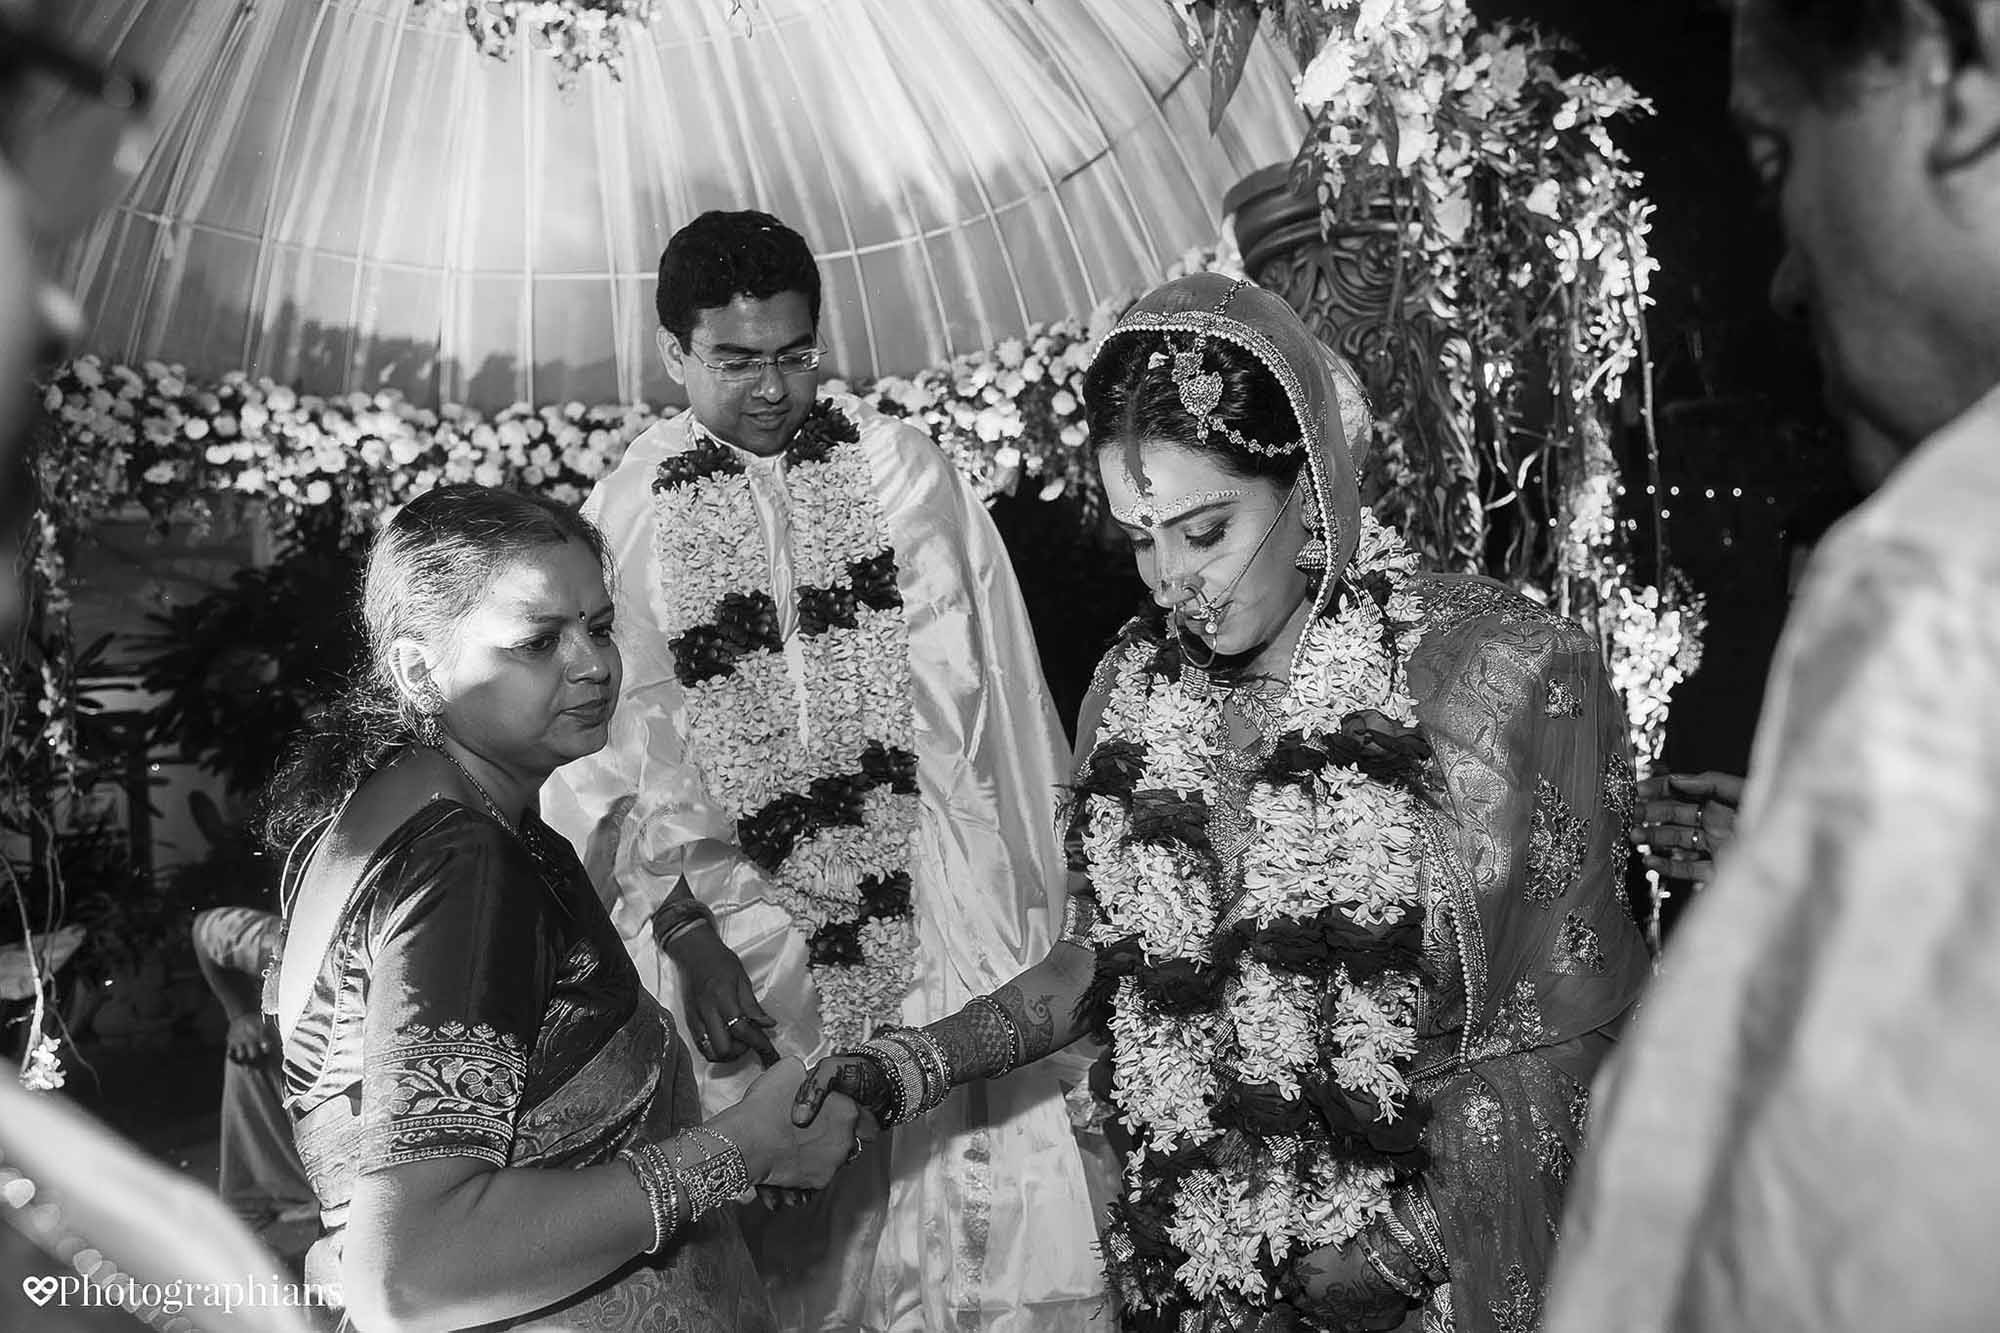 Bengali_Wedding_Photography_Kolkata_Photographians_158